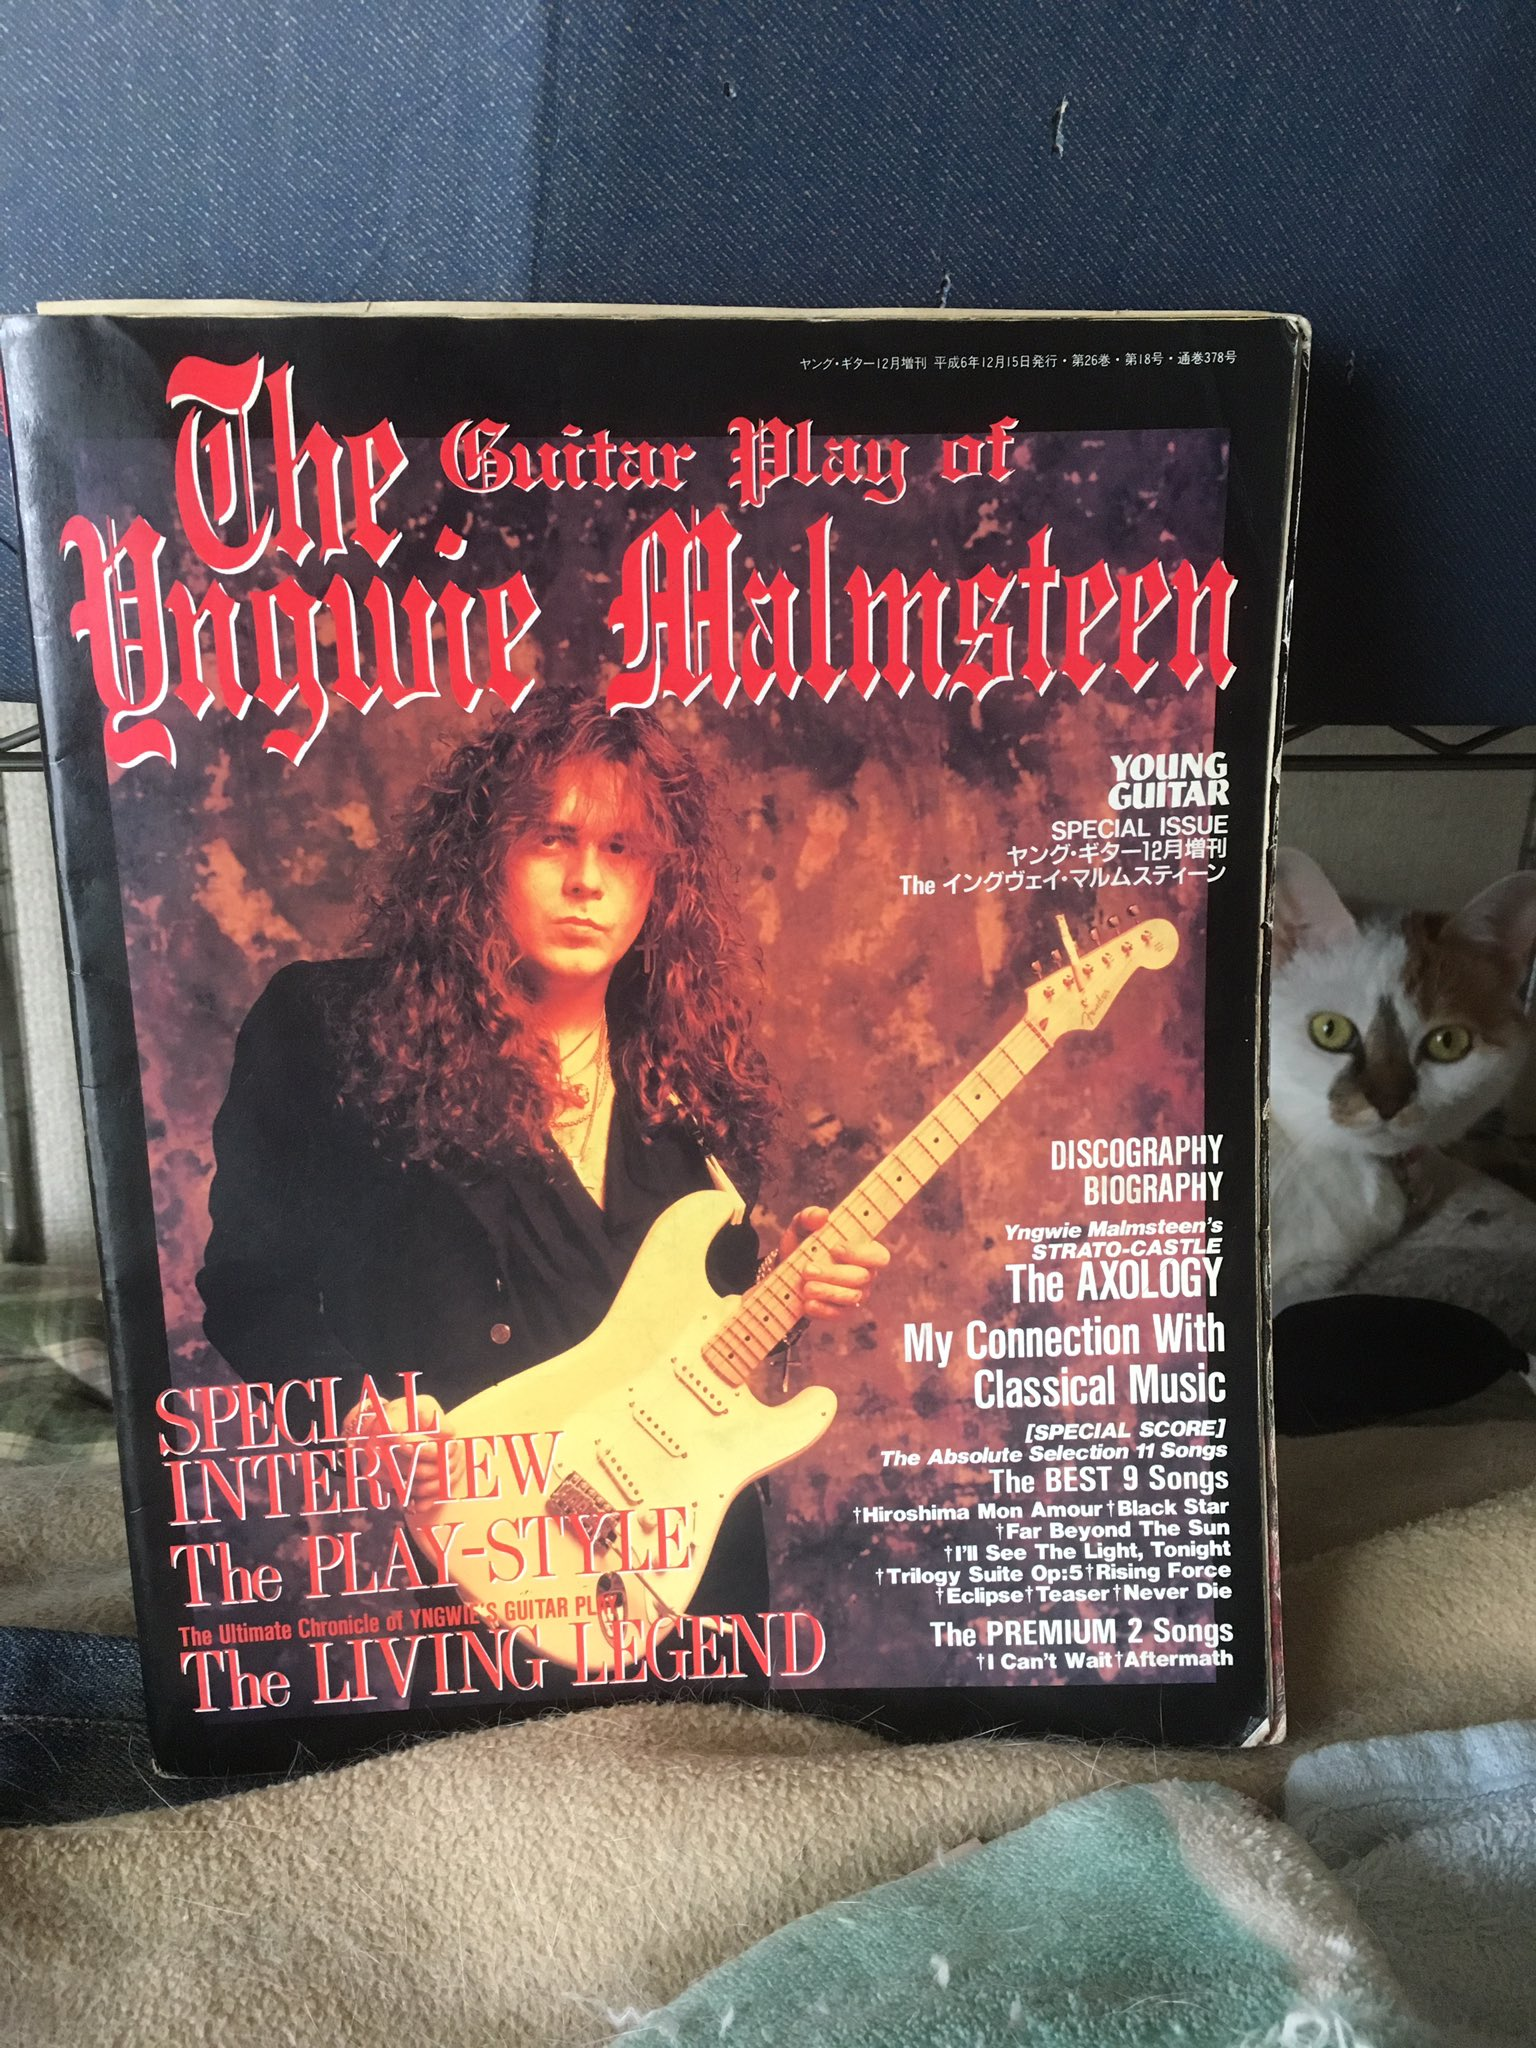 Happy Birthday Yngwie Malmsteen!